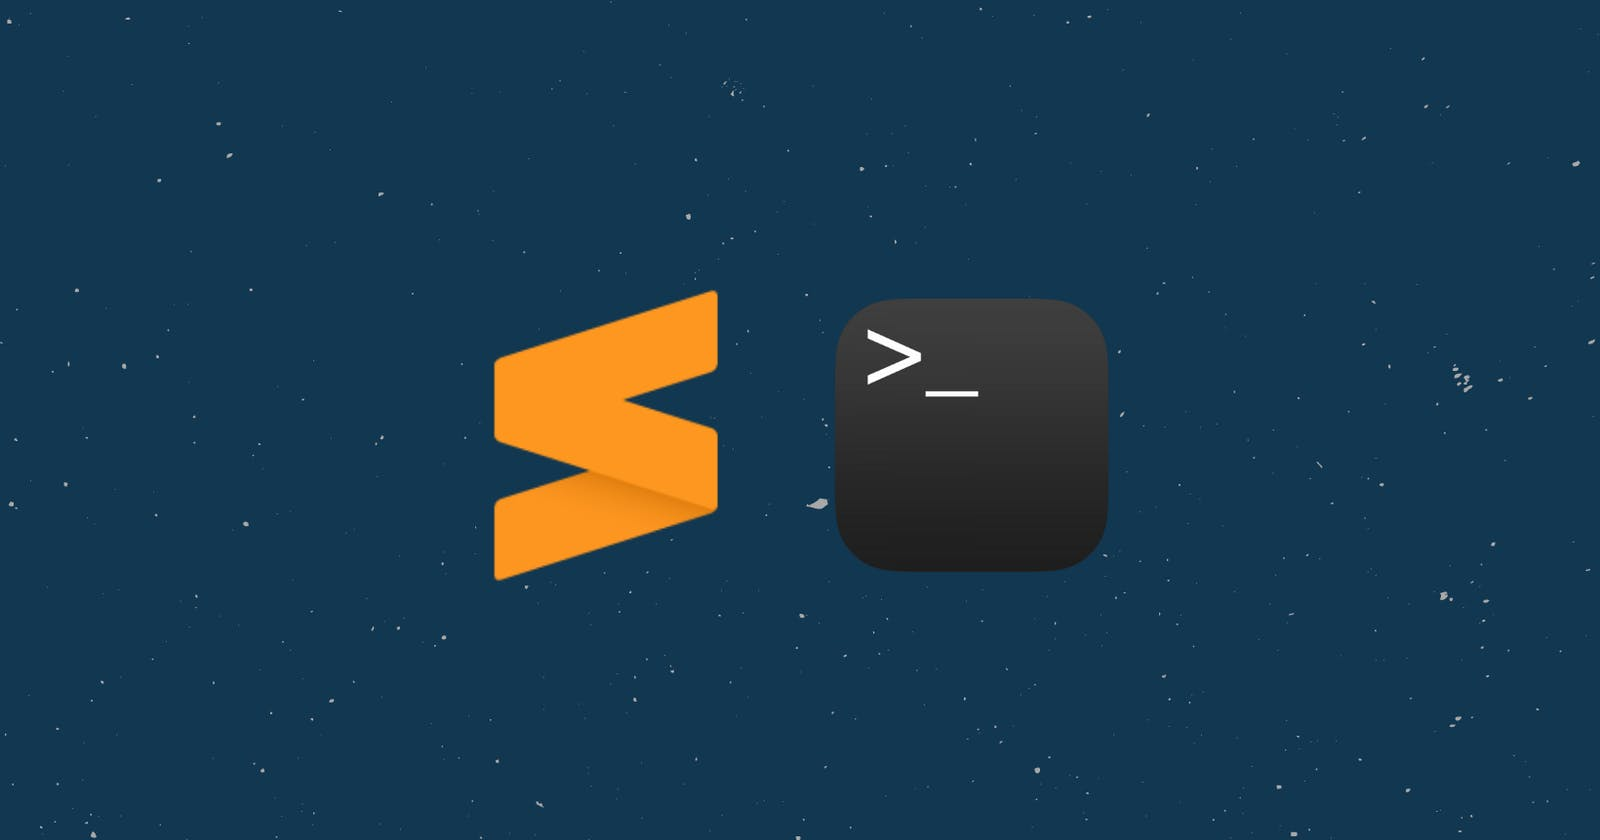 How to open sublime text from the windows command line